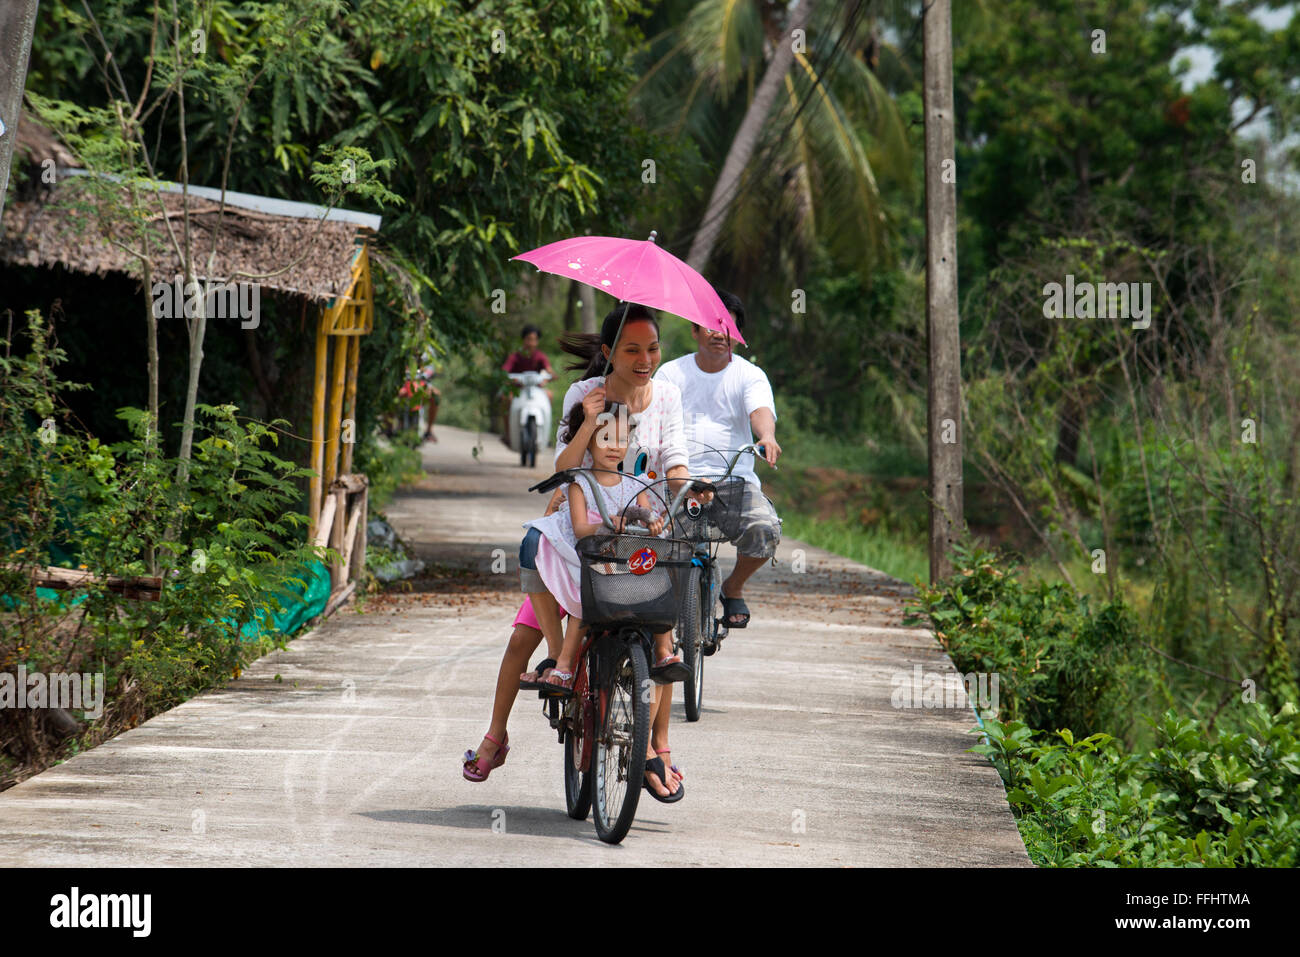 Asian tourists round the island by bicycle. Ko Kret (also Koh Kred) is an island in the Chao Phraya River, 20 km - Stock Image